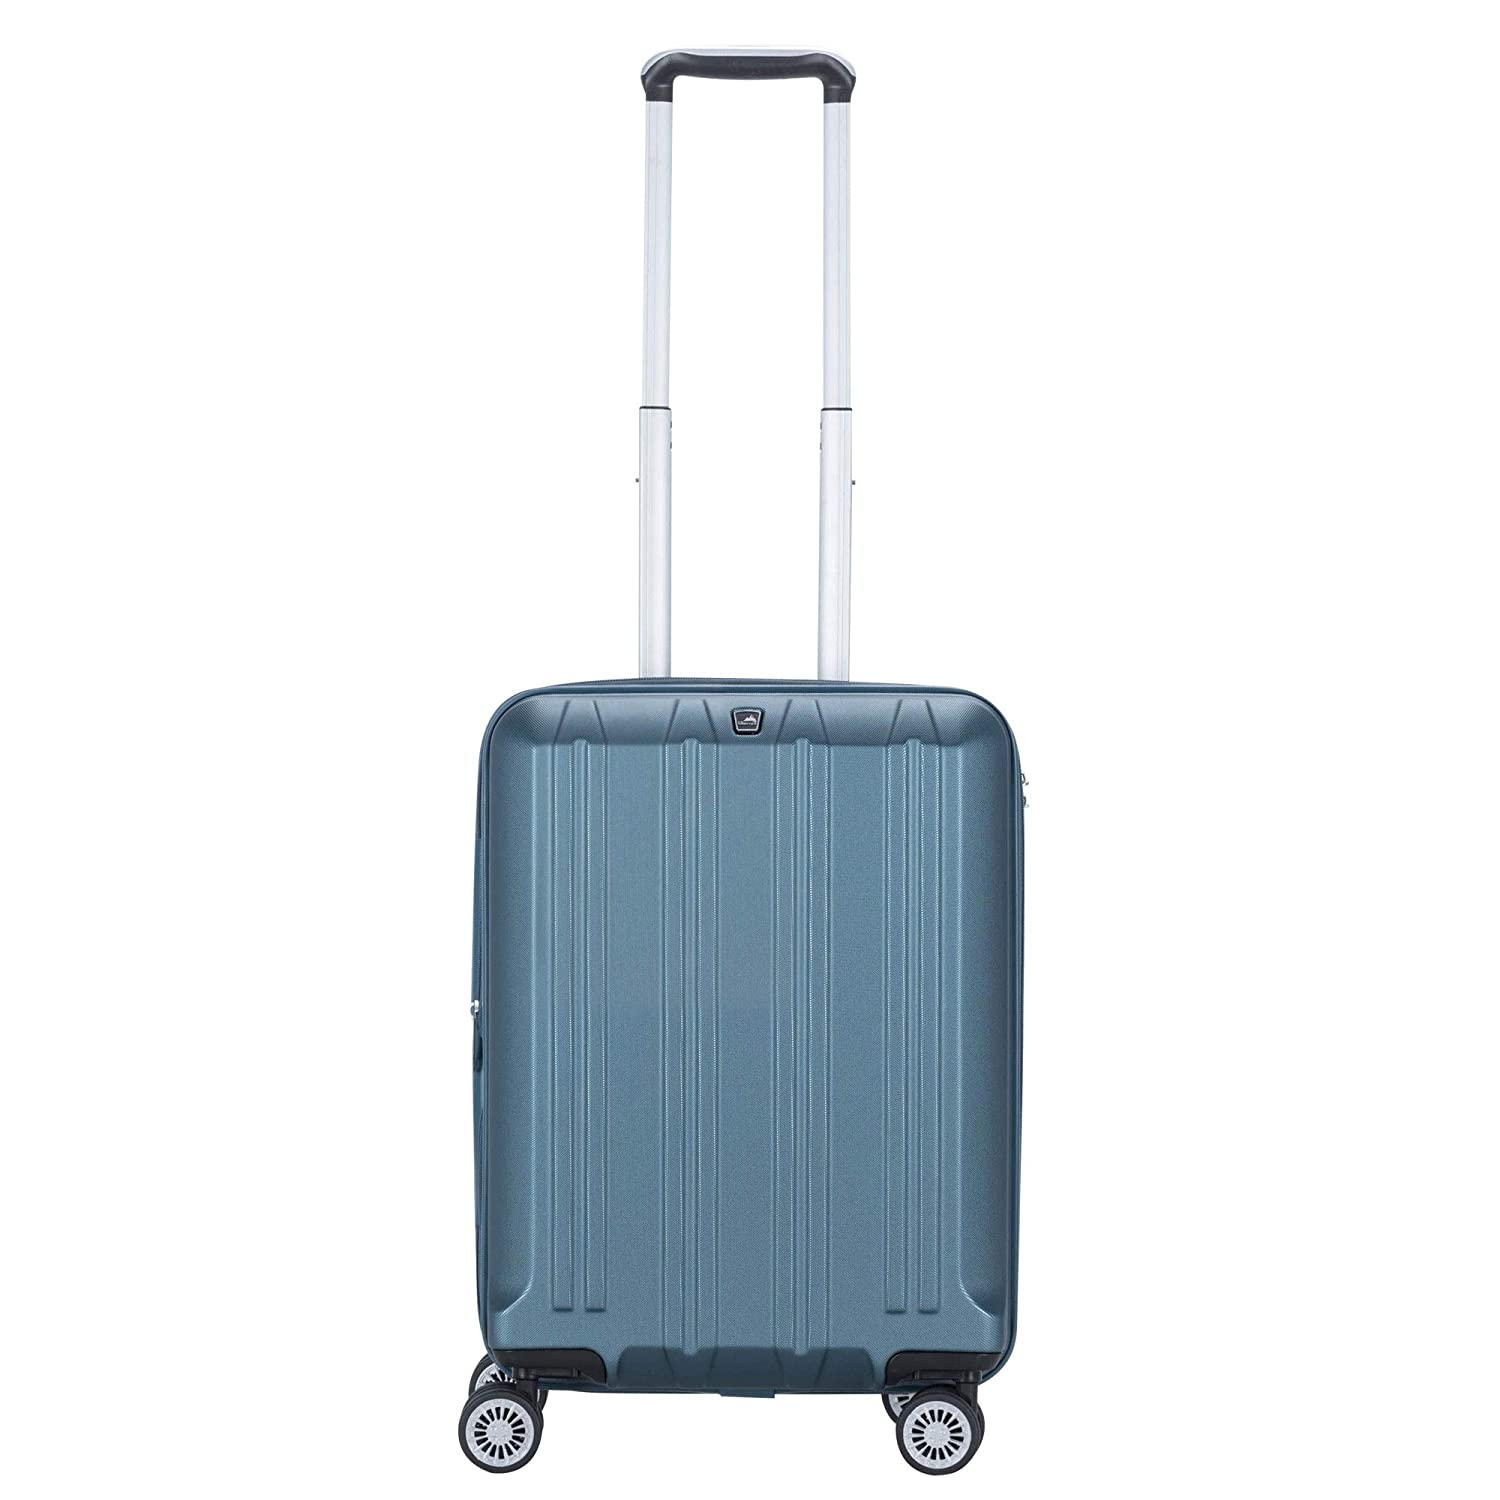 Sherrpa Shadow Luggage Hardside Lightweight Expandable Suitcase Spinner Carry on 20in 25in 29in S 20inch carry on , Blue